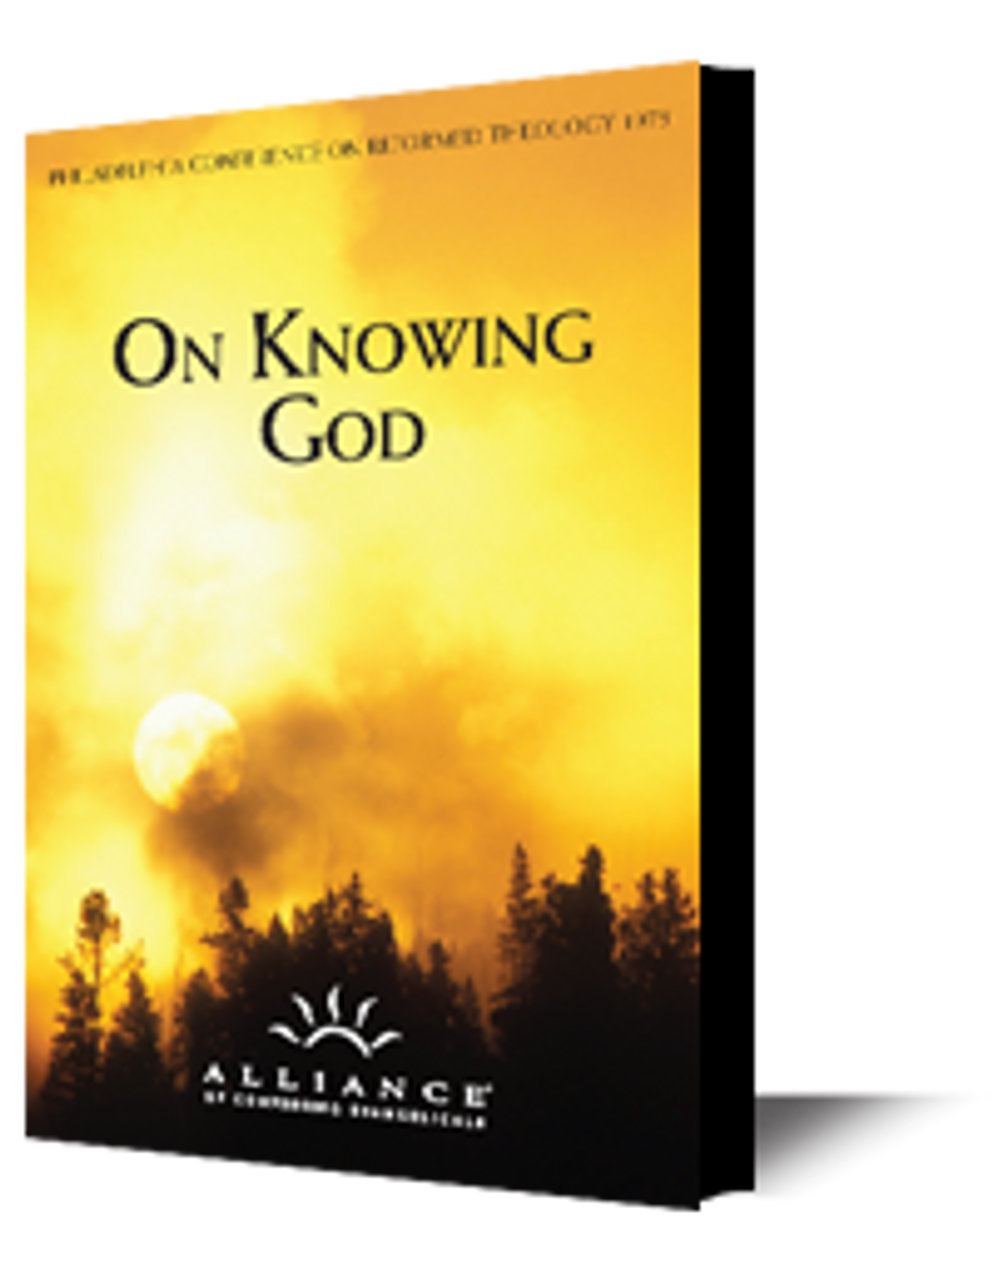 On Knowing God PCRT 1975 (mp3 Disc)